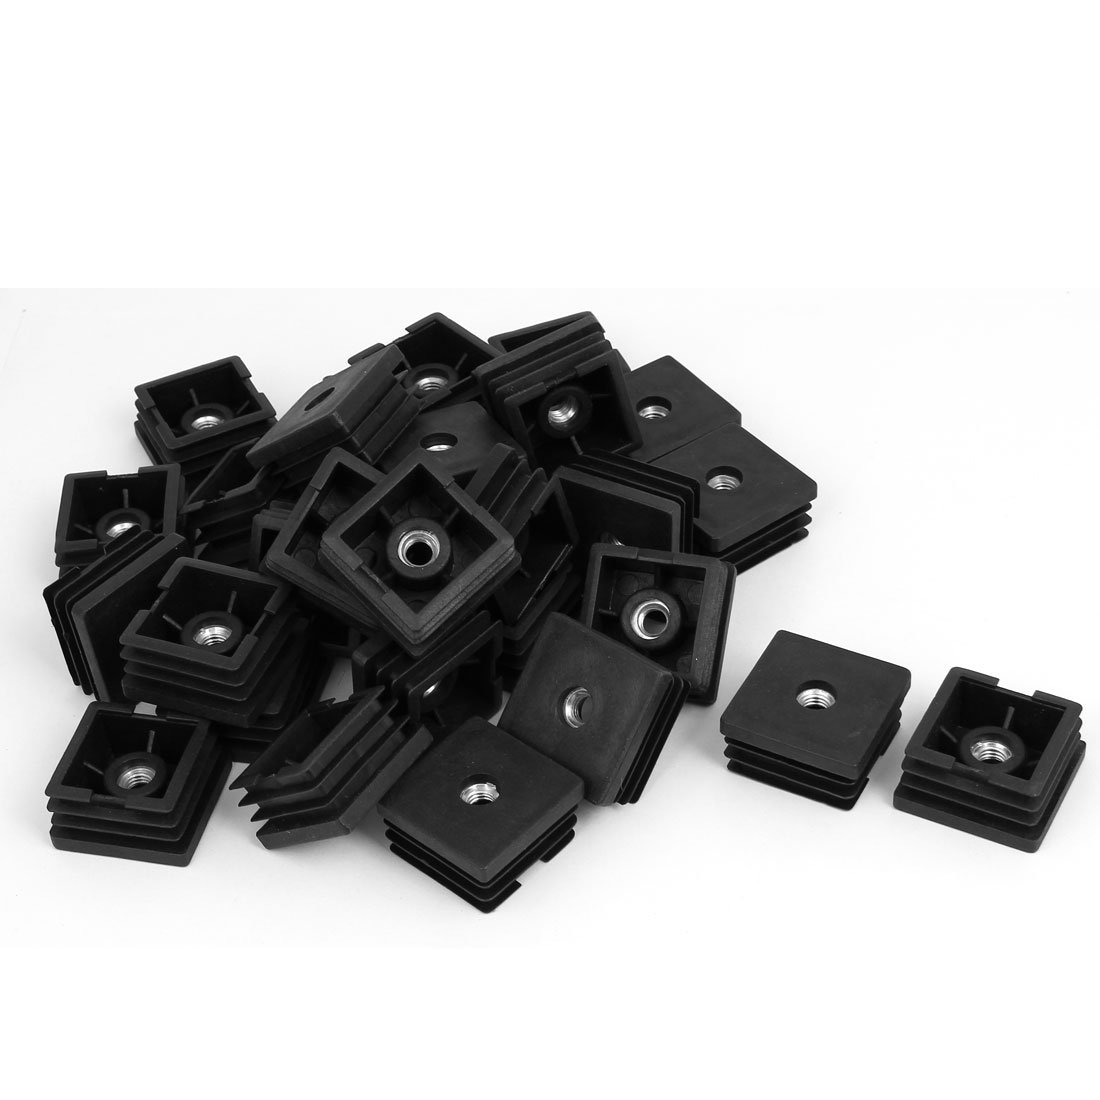 uxcell Furniture Table Chair 38mmx38mmx20mm Square Shaped Adjustable Leveling Feet 30pcs